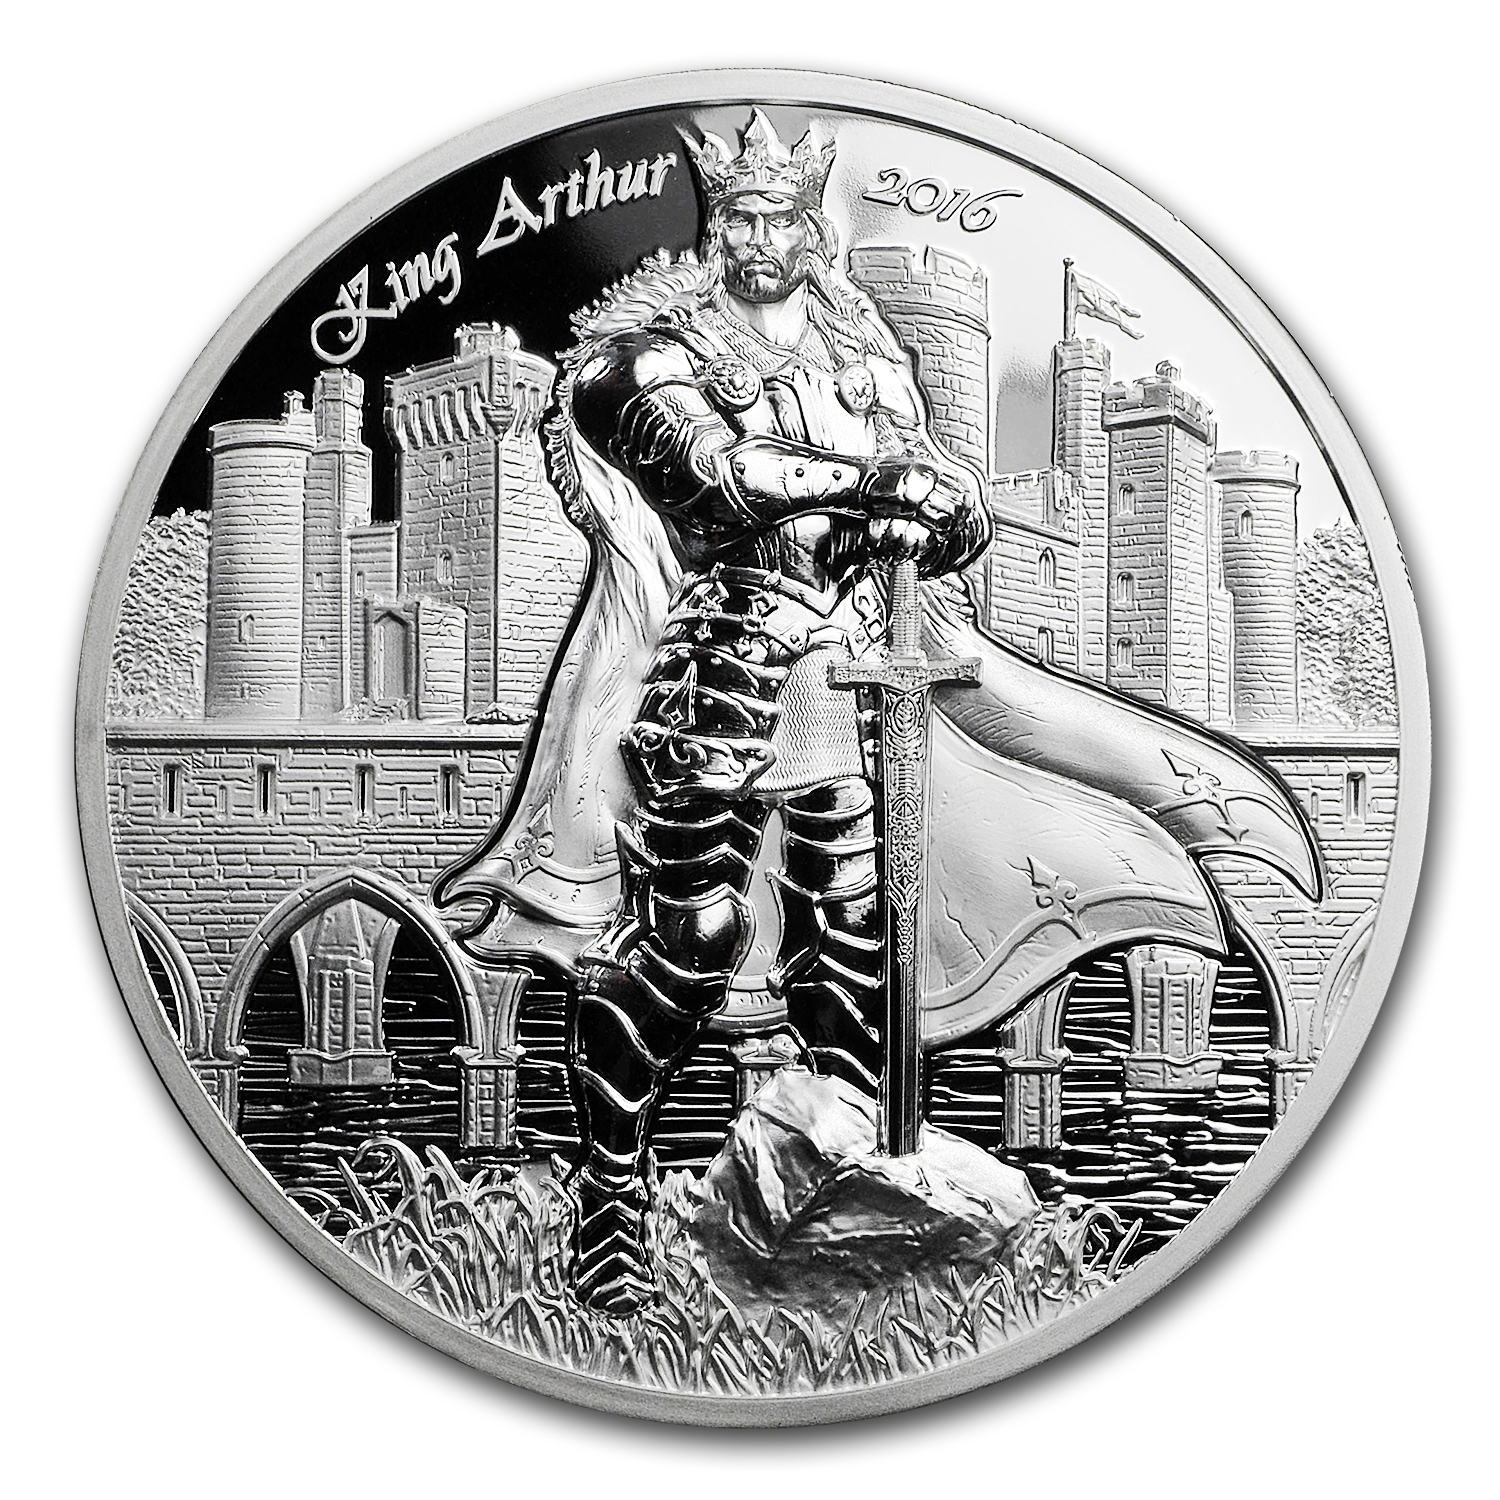 2016 Cook Islands 2 oz Silver Ultra High Relief King Arthur